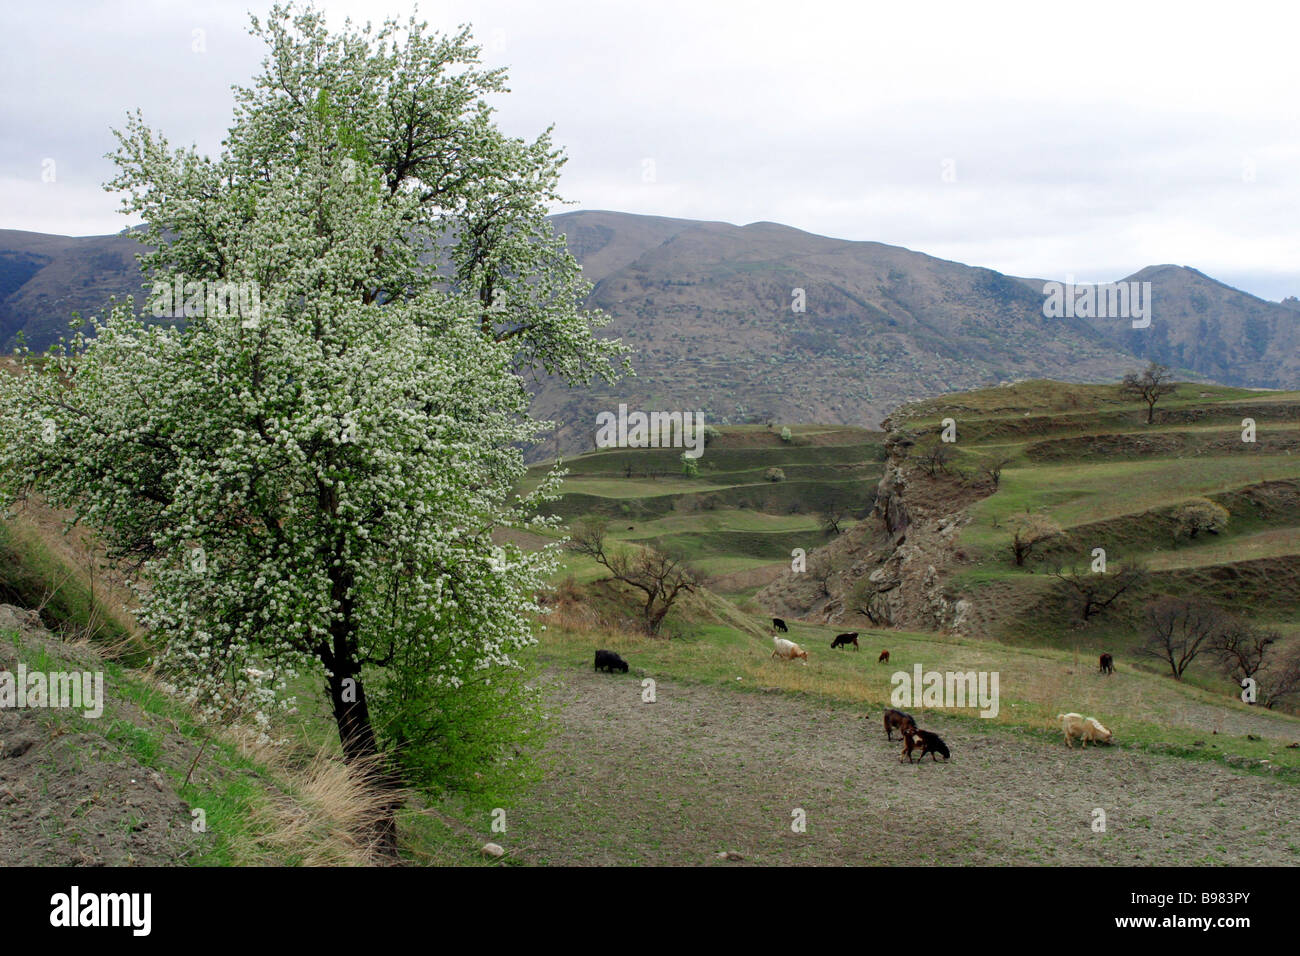 Pastureland in the Gunib District - Stock Image